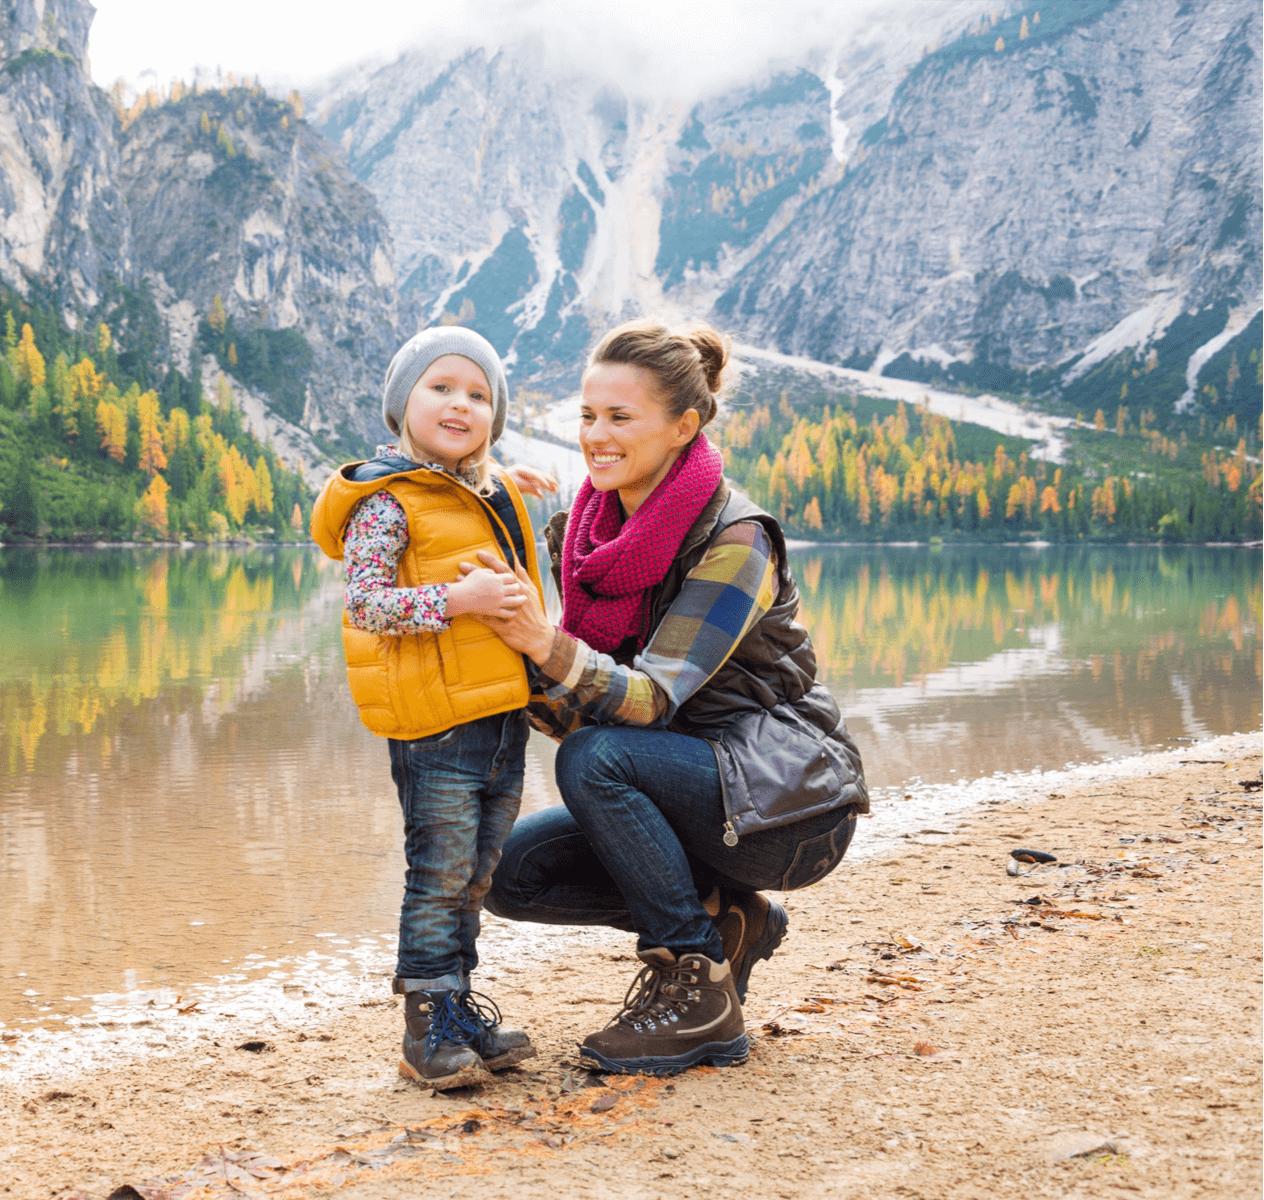 Caucasian mother with her young daughter in front of a lake and mountains.